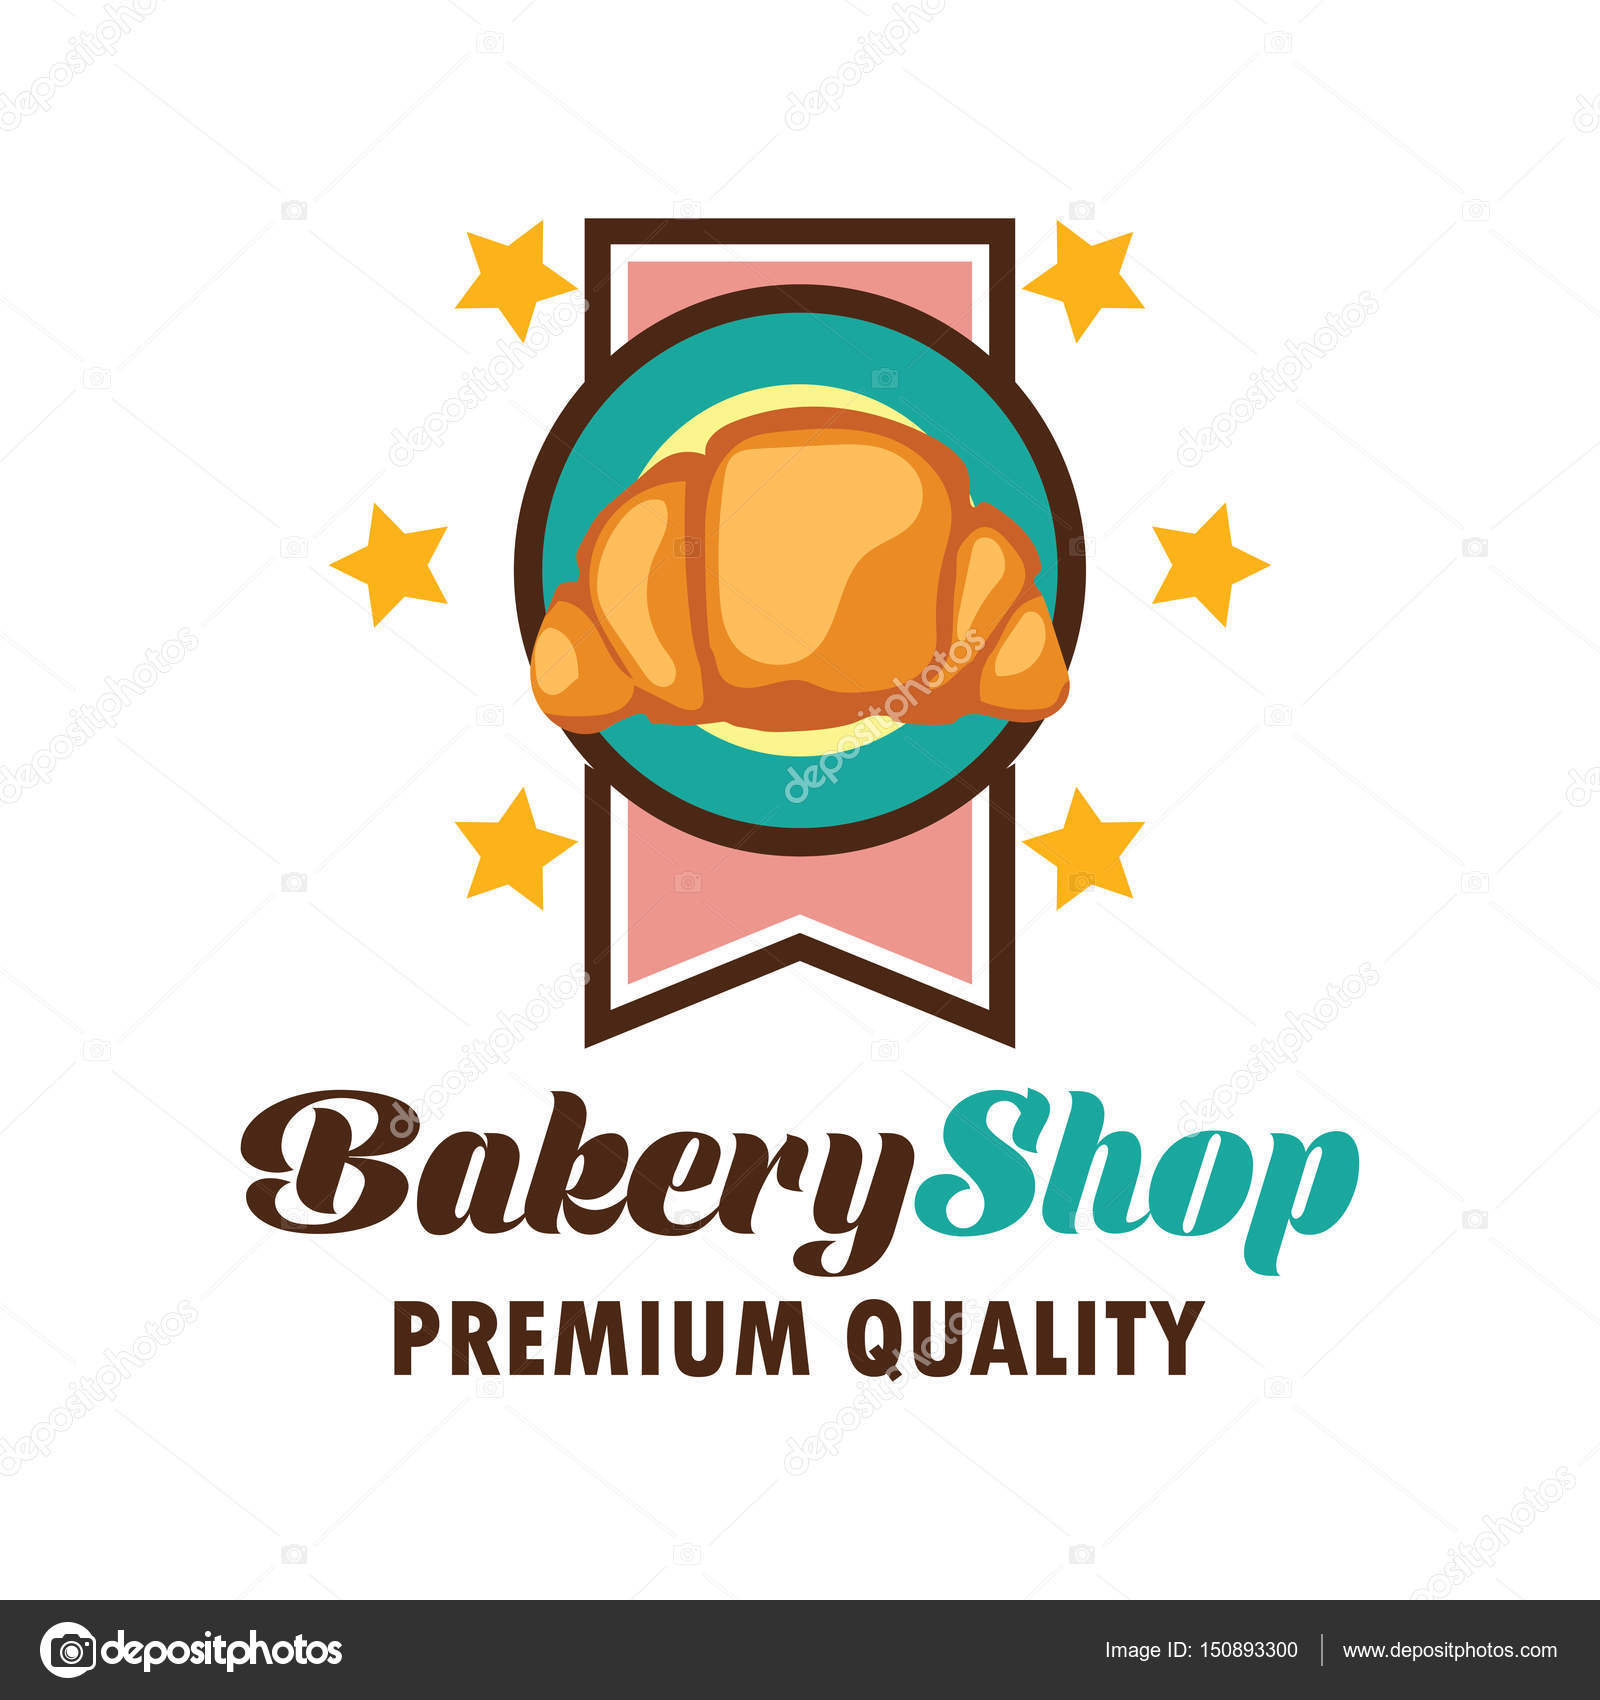 Bakery logo with text space for your slogan / tagline, vector